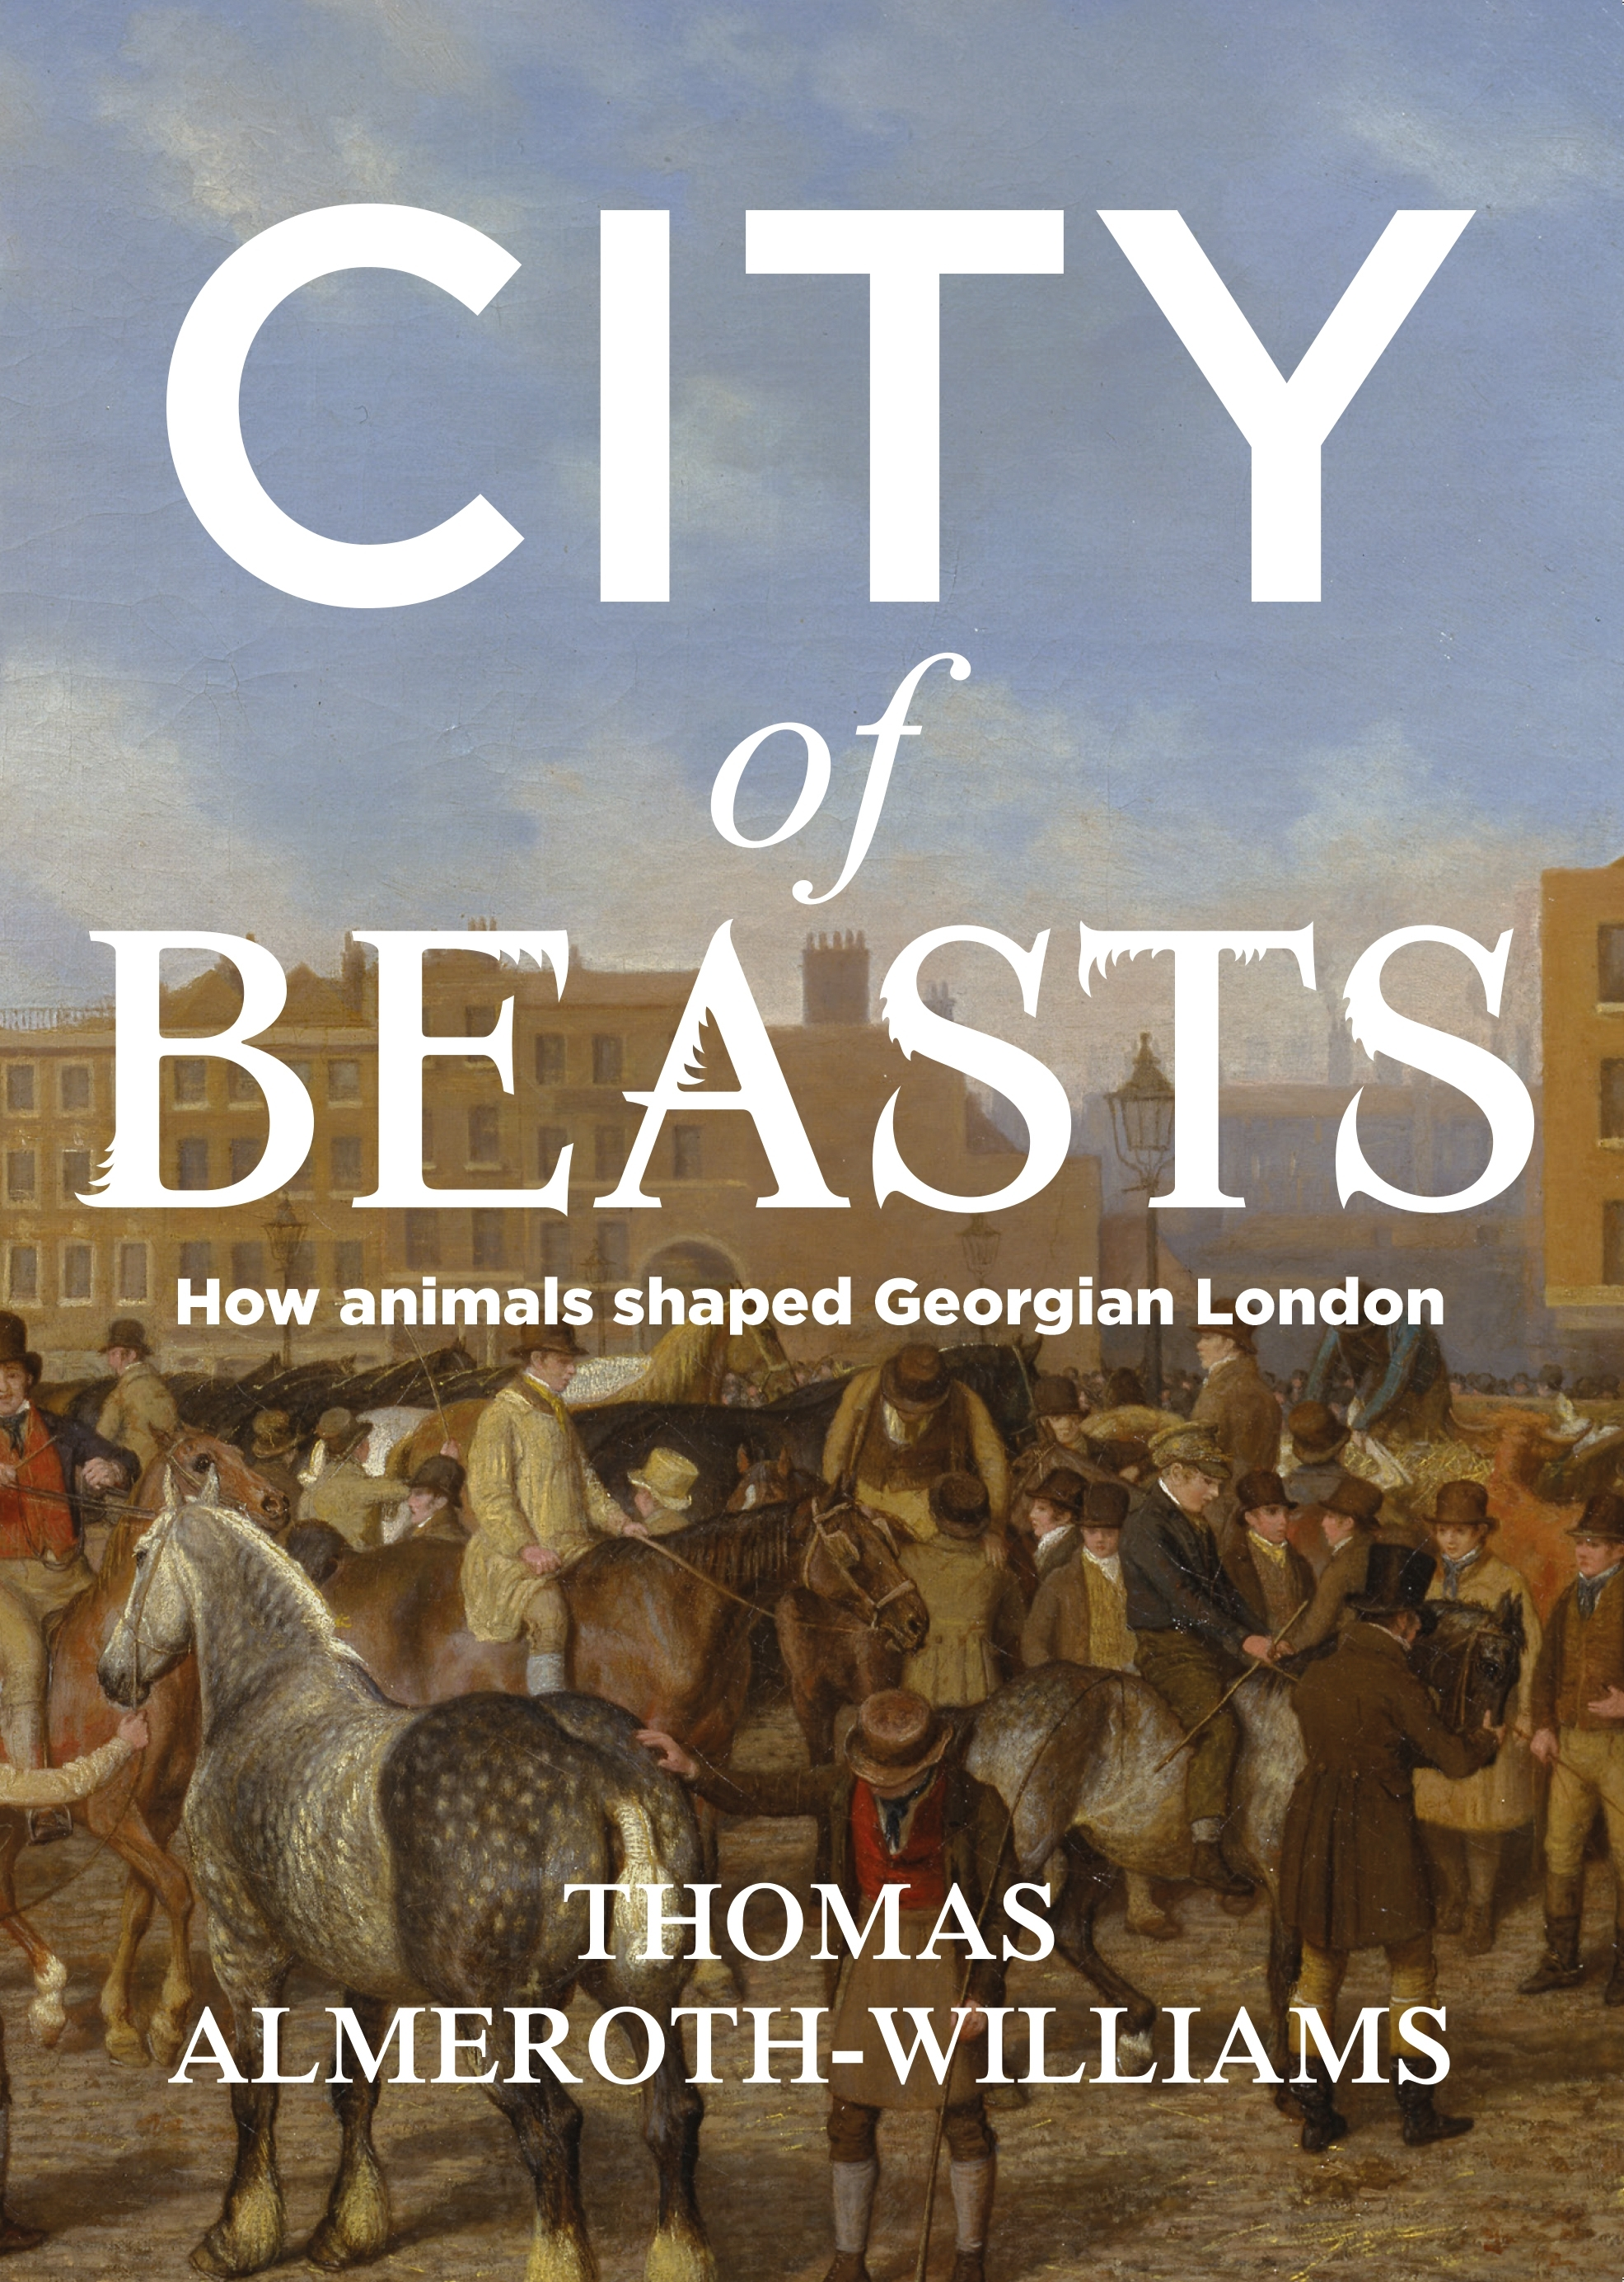 City of beasts – Q&A with Thomas Almeroth-Williams